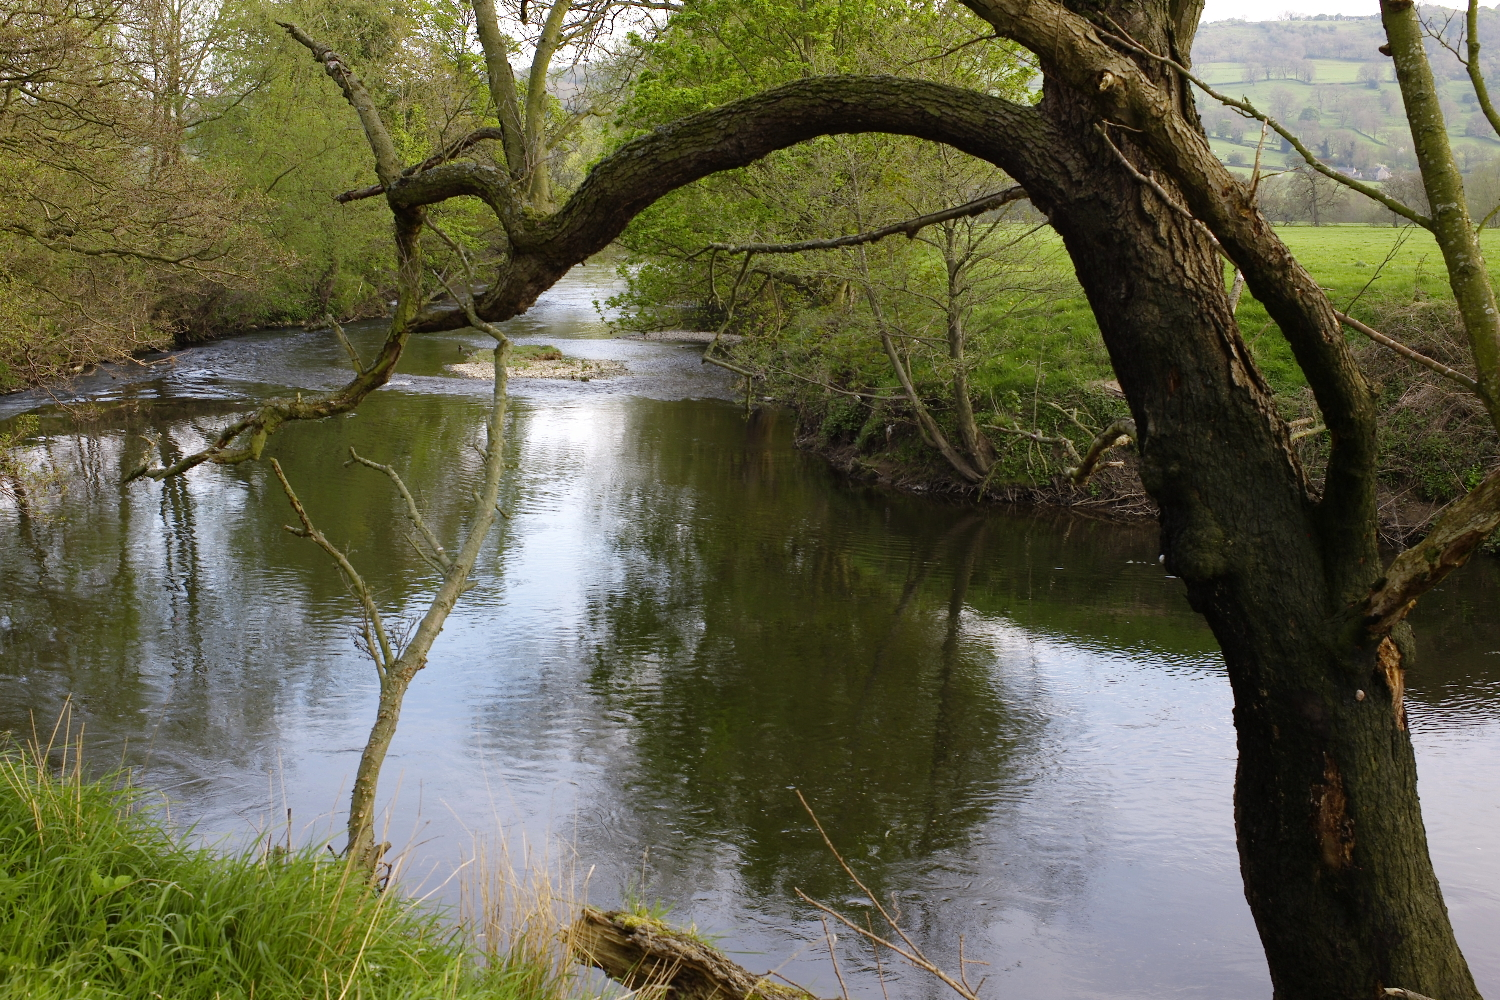 The River Derwent, 10 minutes from Darley House, offers endless painting prompts.